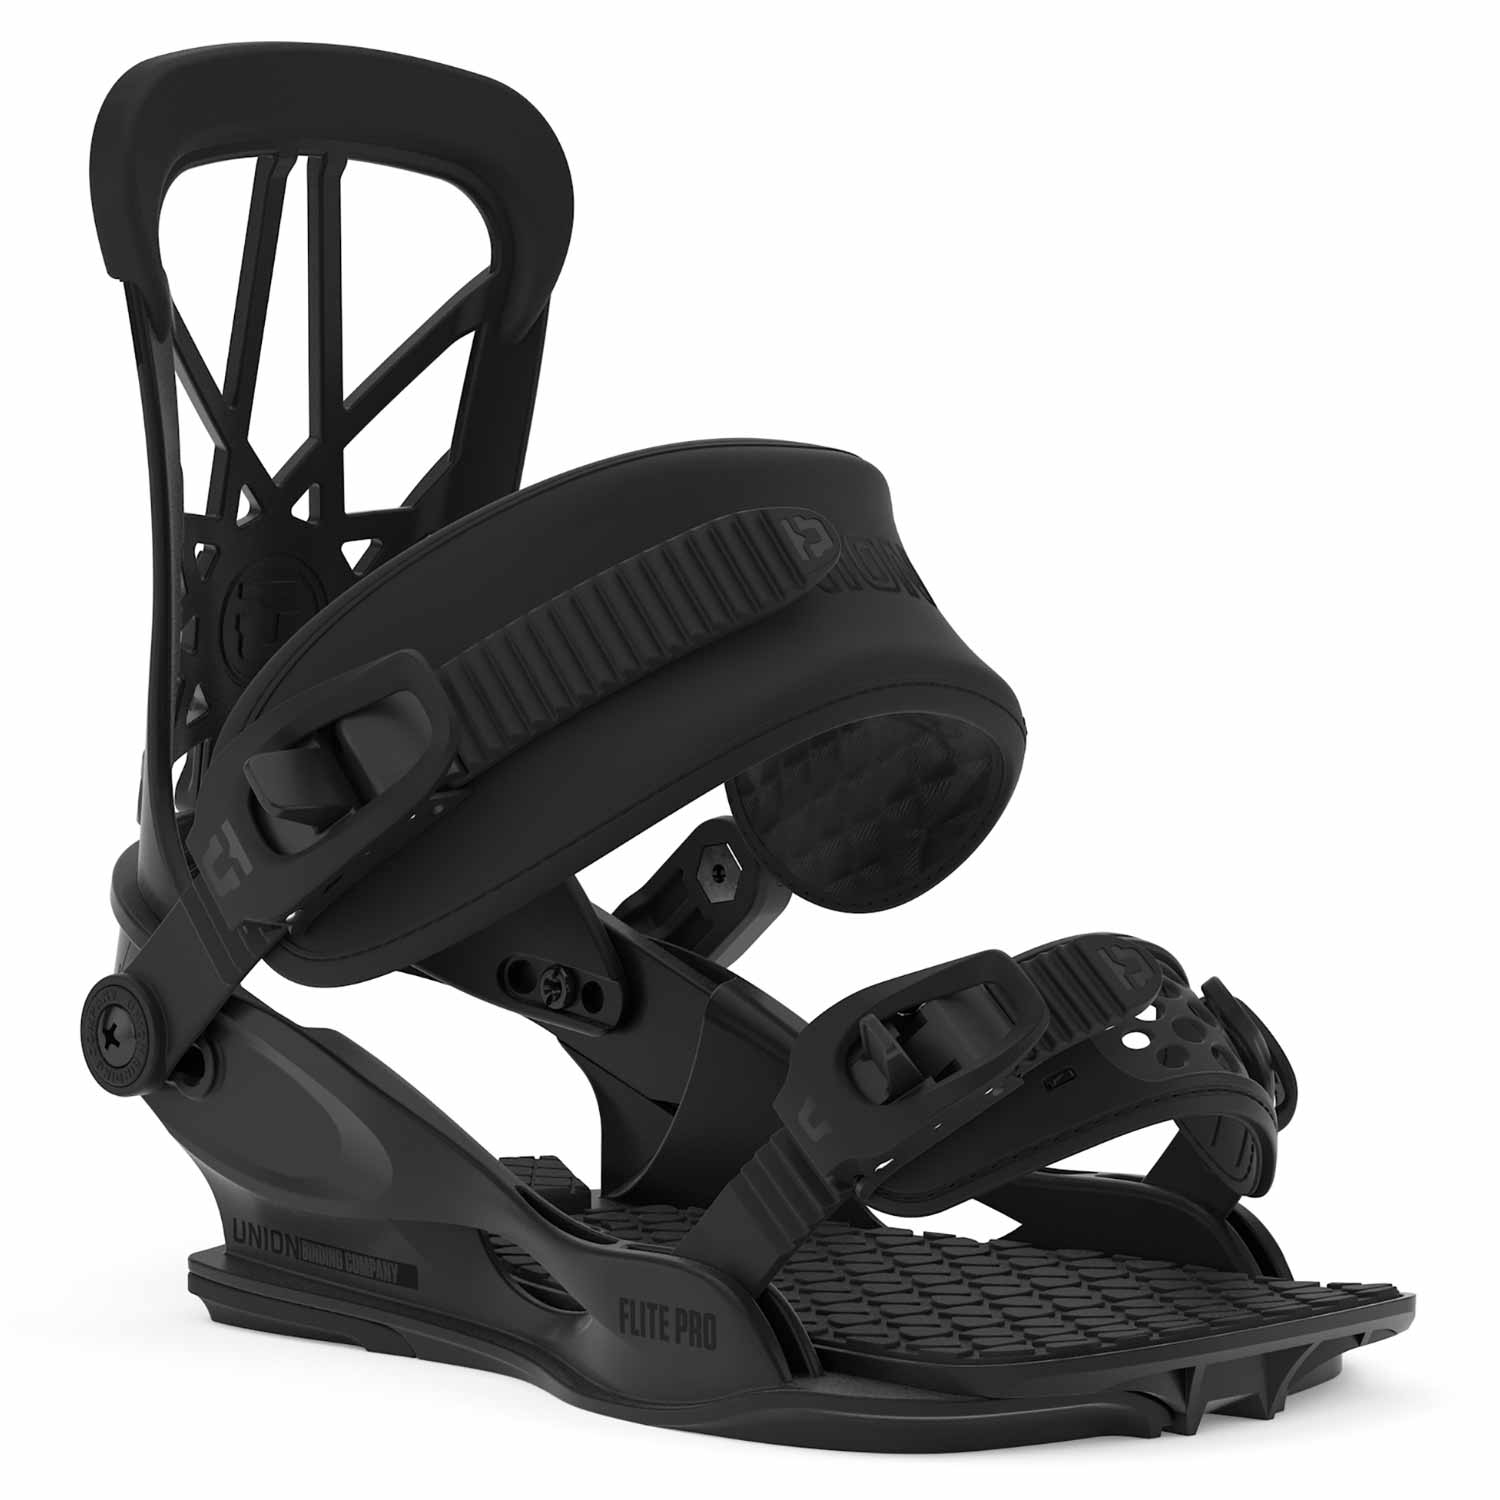 Union Flite Pro Snowboard Binding Black 2020